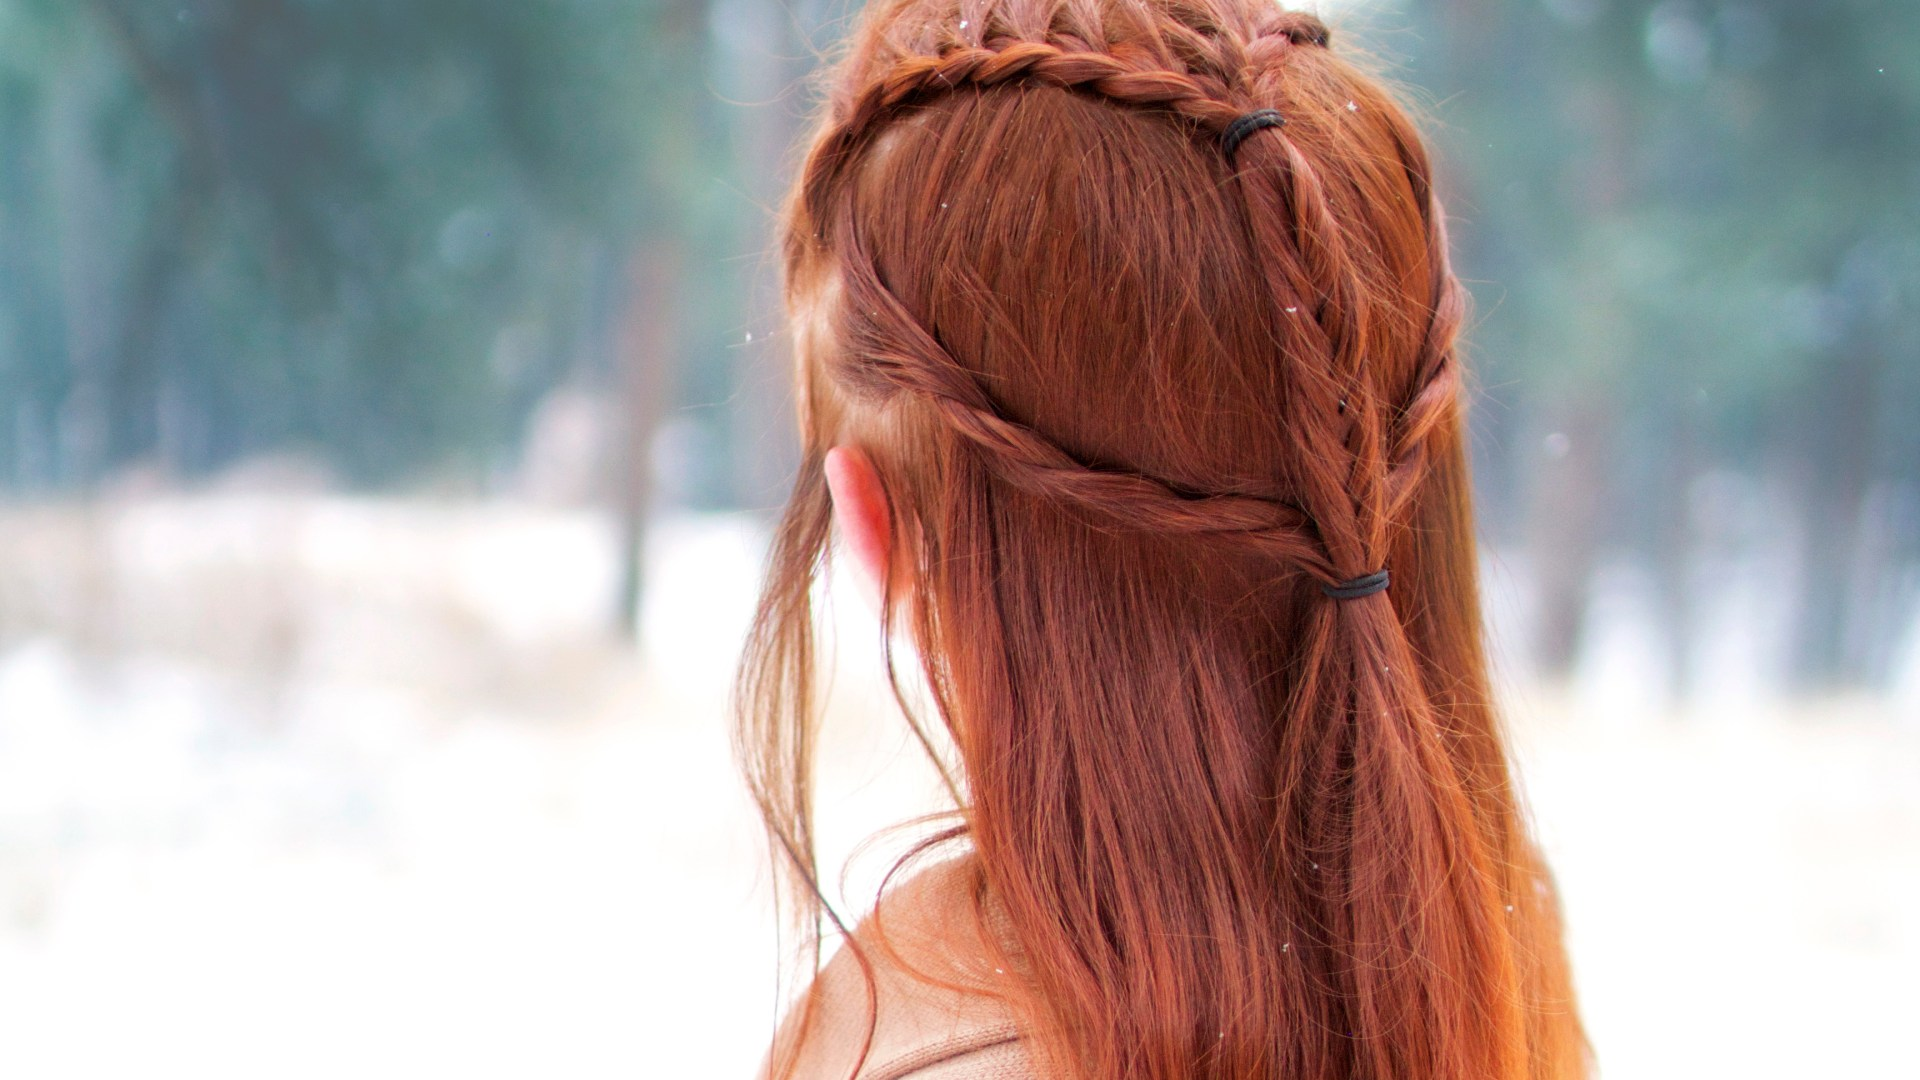 Silvousplaits Hairstyling   Tauriel's Hair in the Hobbit ...